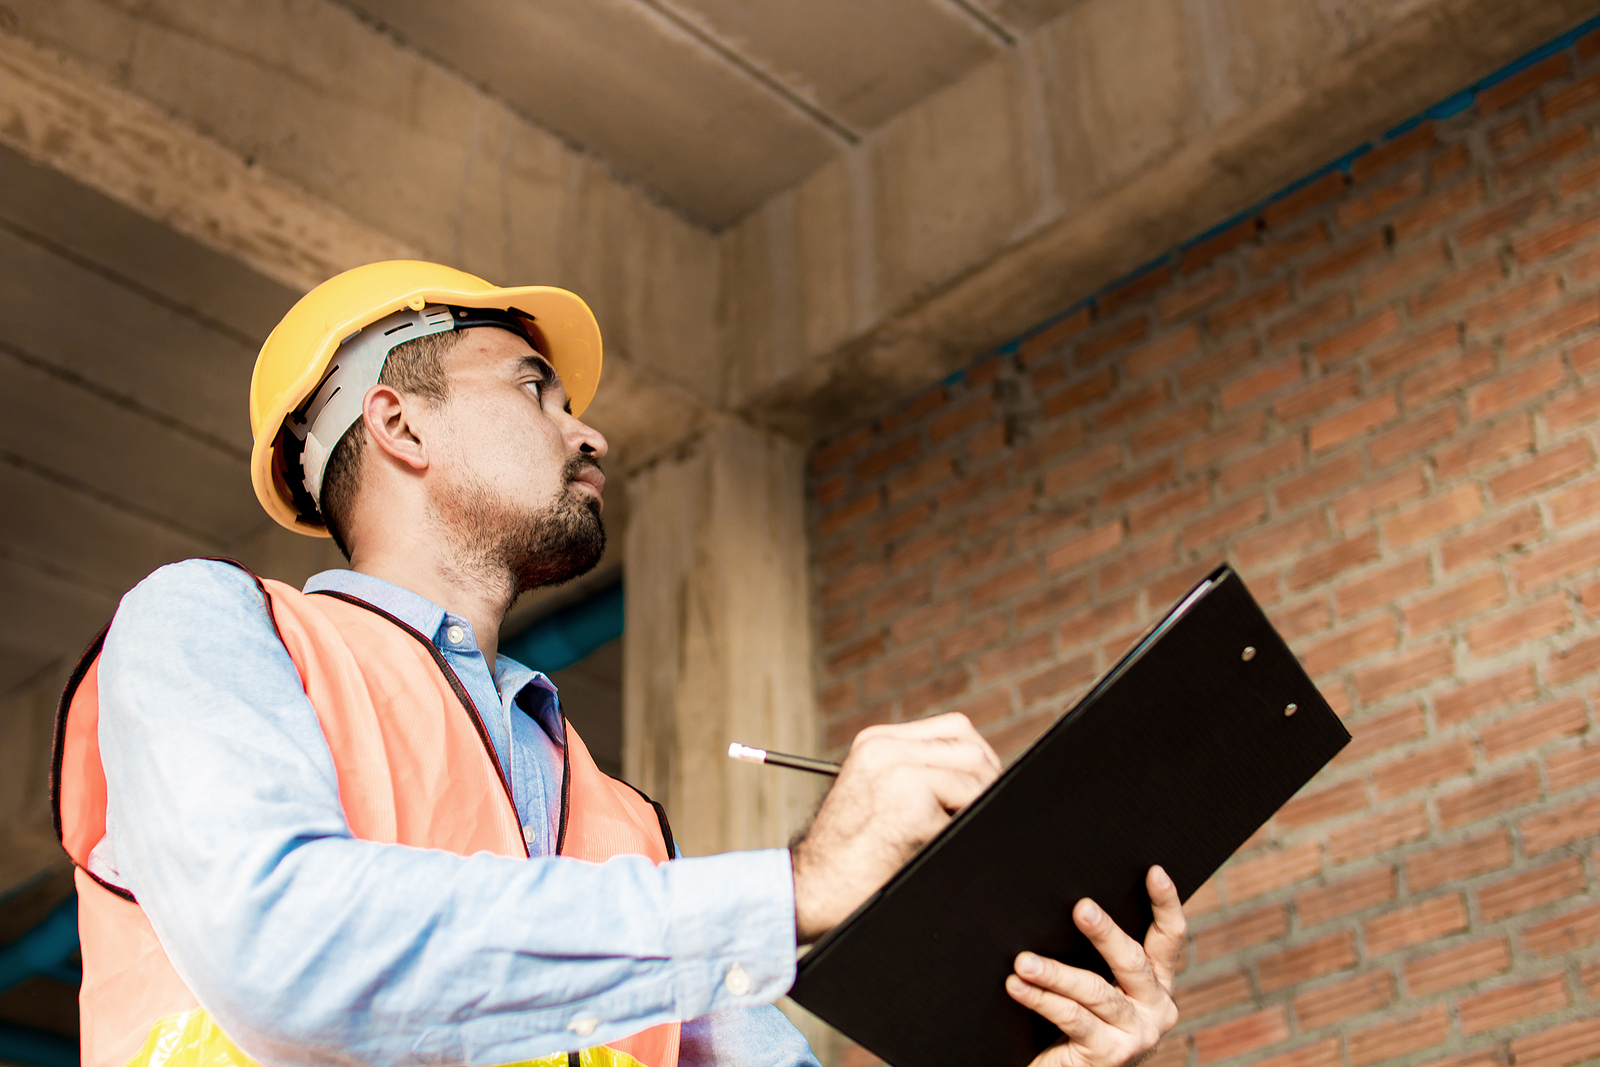 building-inspection-for-budget-planning-myrick-cpa-dc